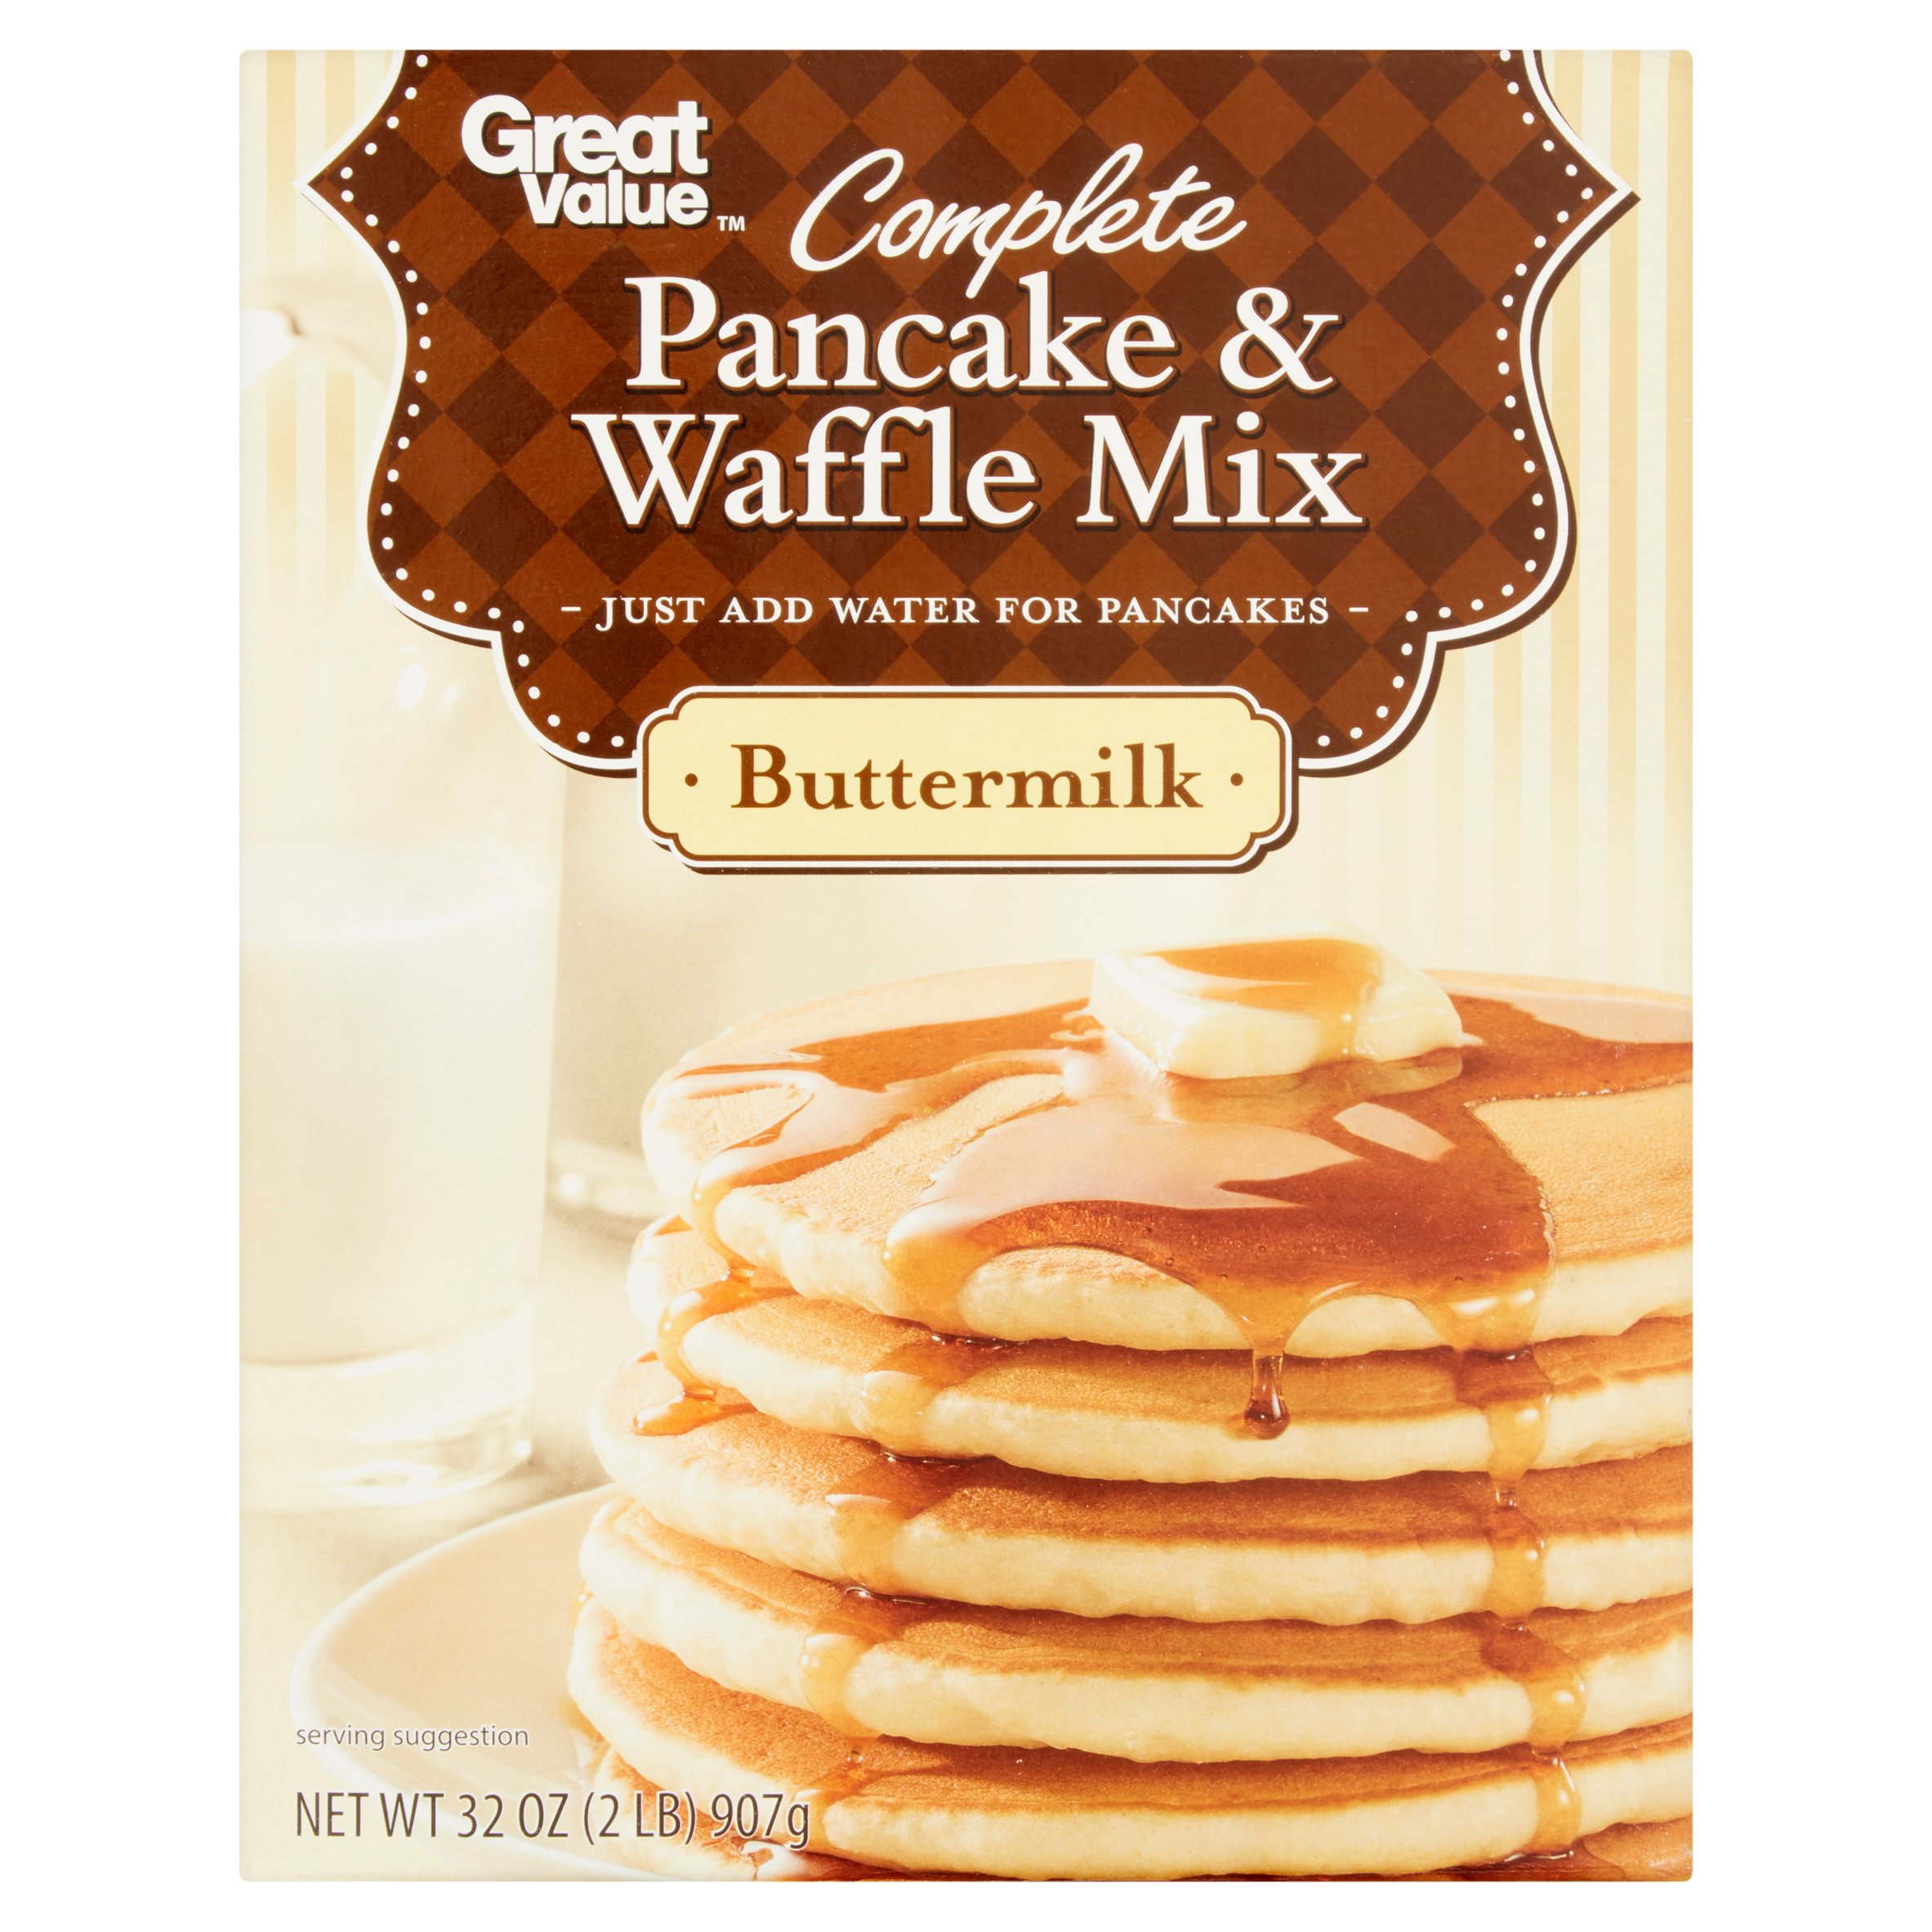 Great Value Buttermilk Complete Pancake & Waffle Mix, 32 oz by Wal-Mart Stores, Inc.